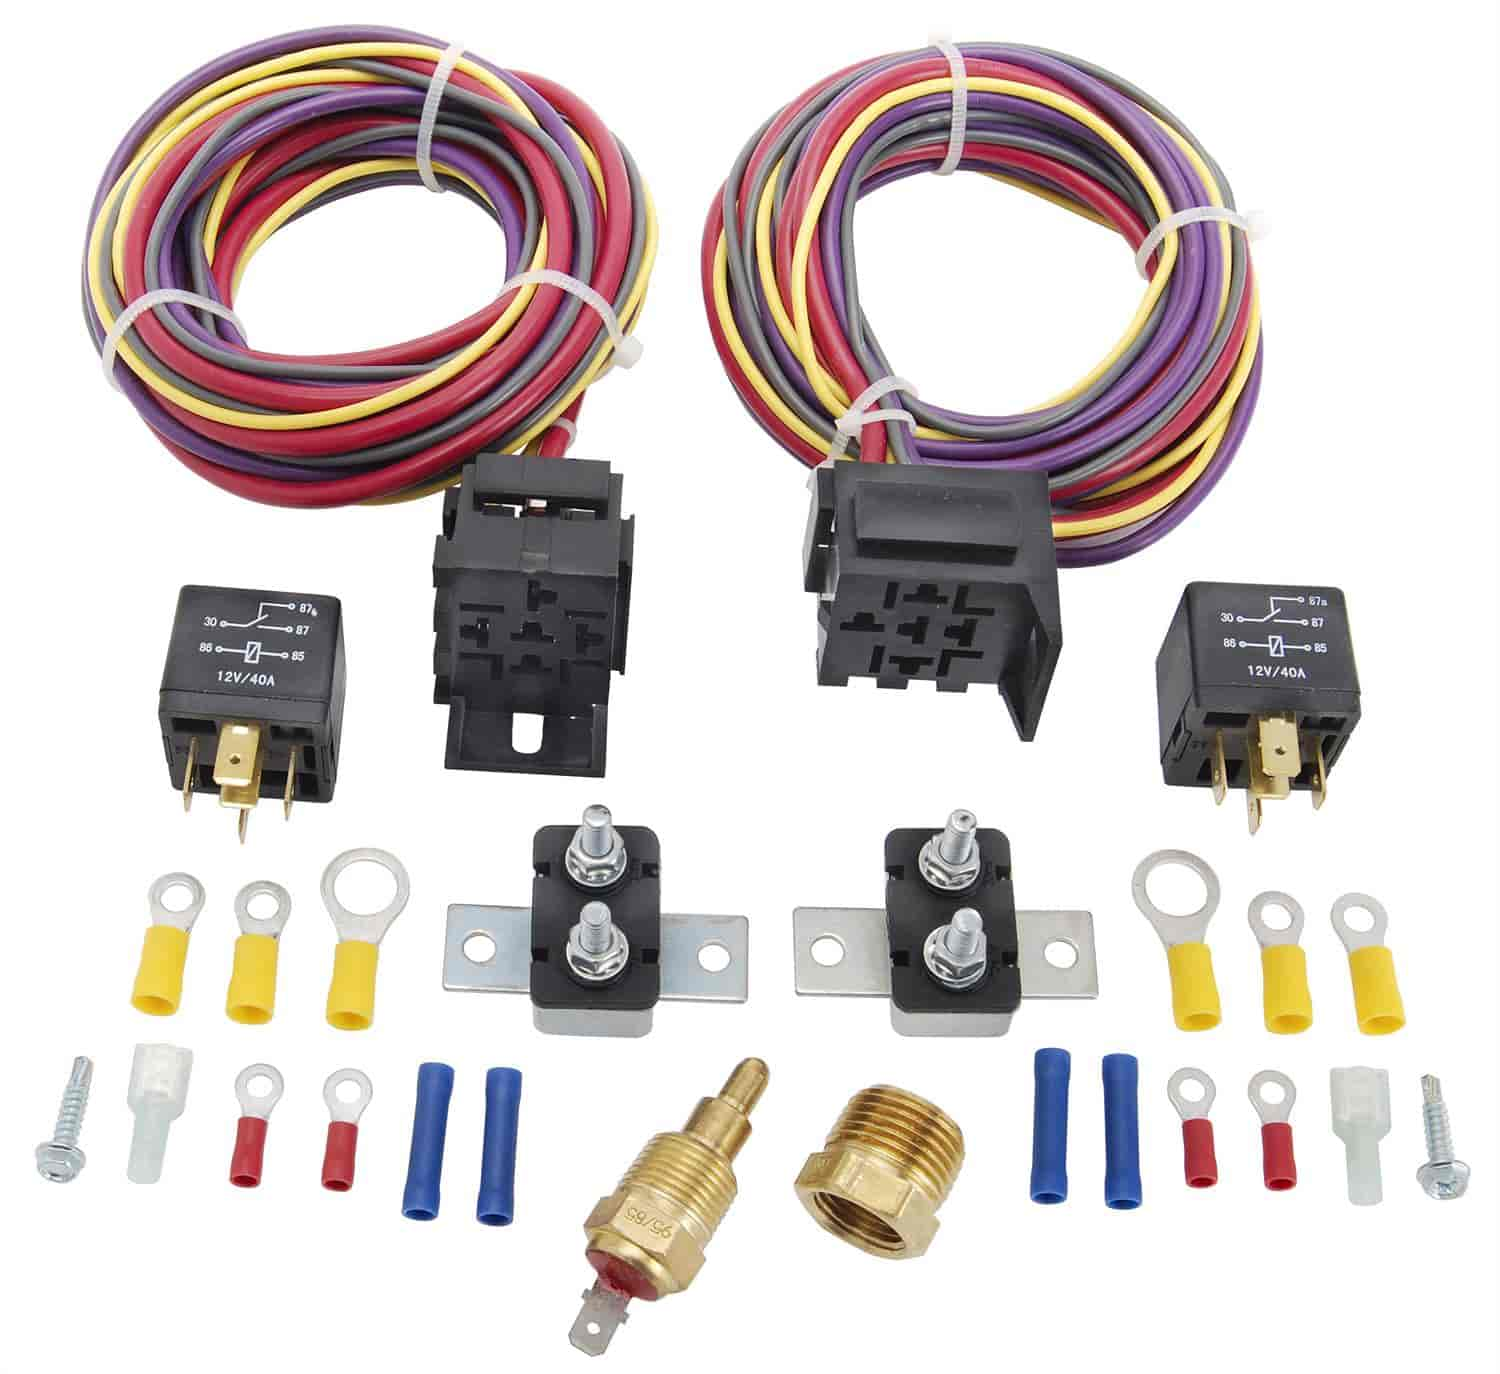 555 10571 jegs performance products 10571 dual fan wiring harness & relay jegs universal wiring harness at soozxer.org